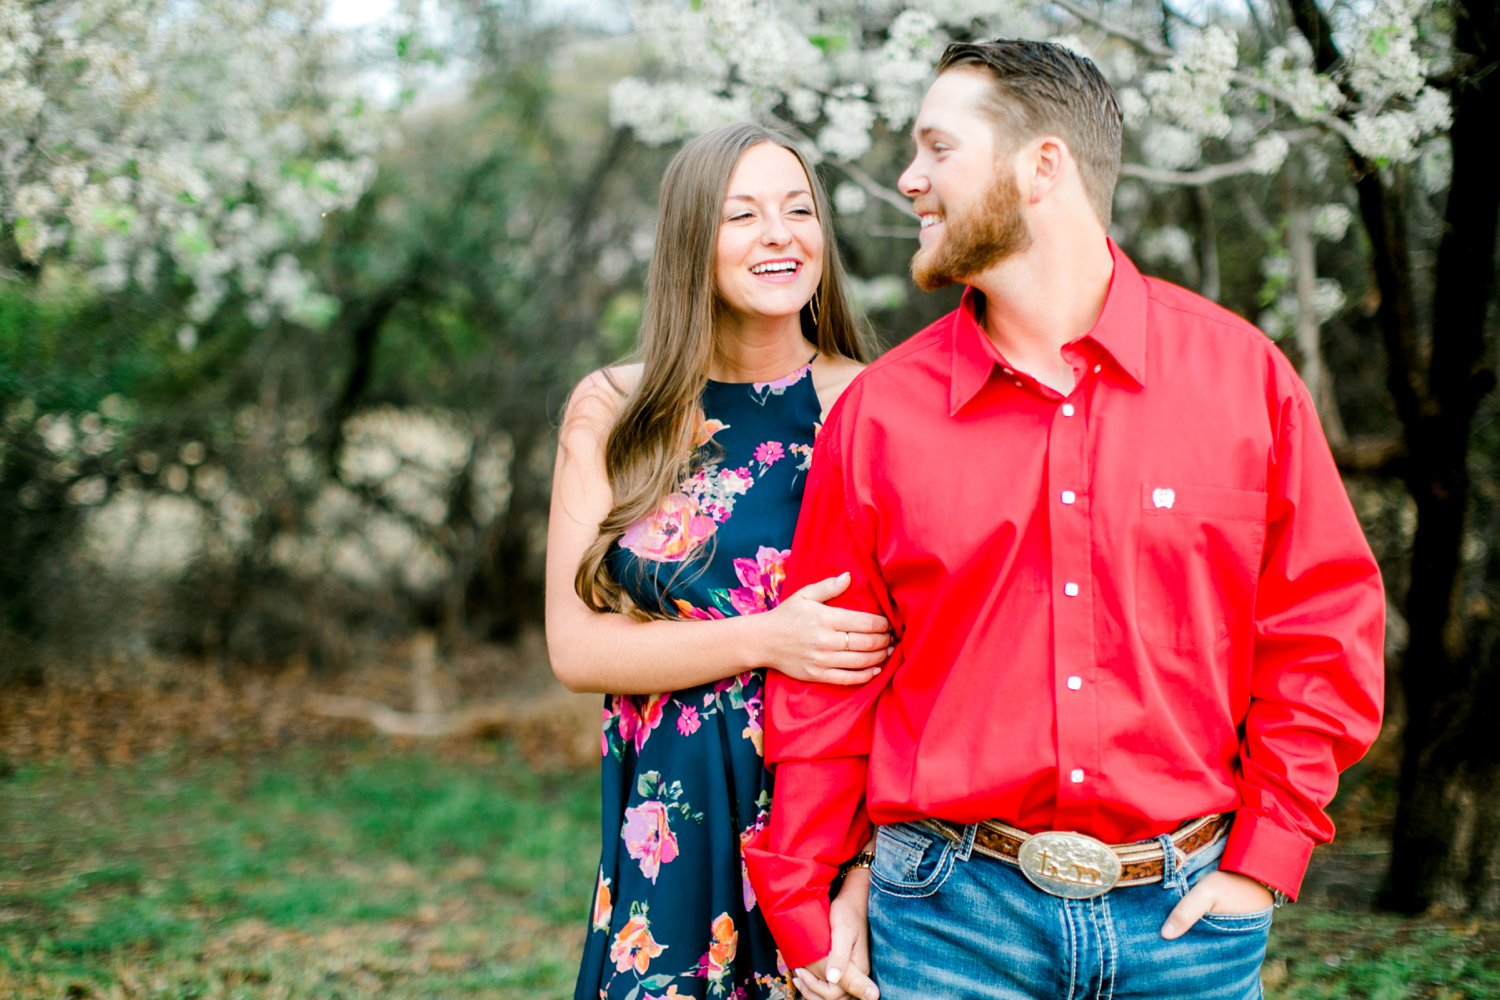 bailey-and-scotland-church-engagement-lubbock-photographer0005.jpg